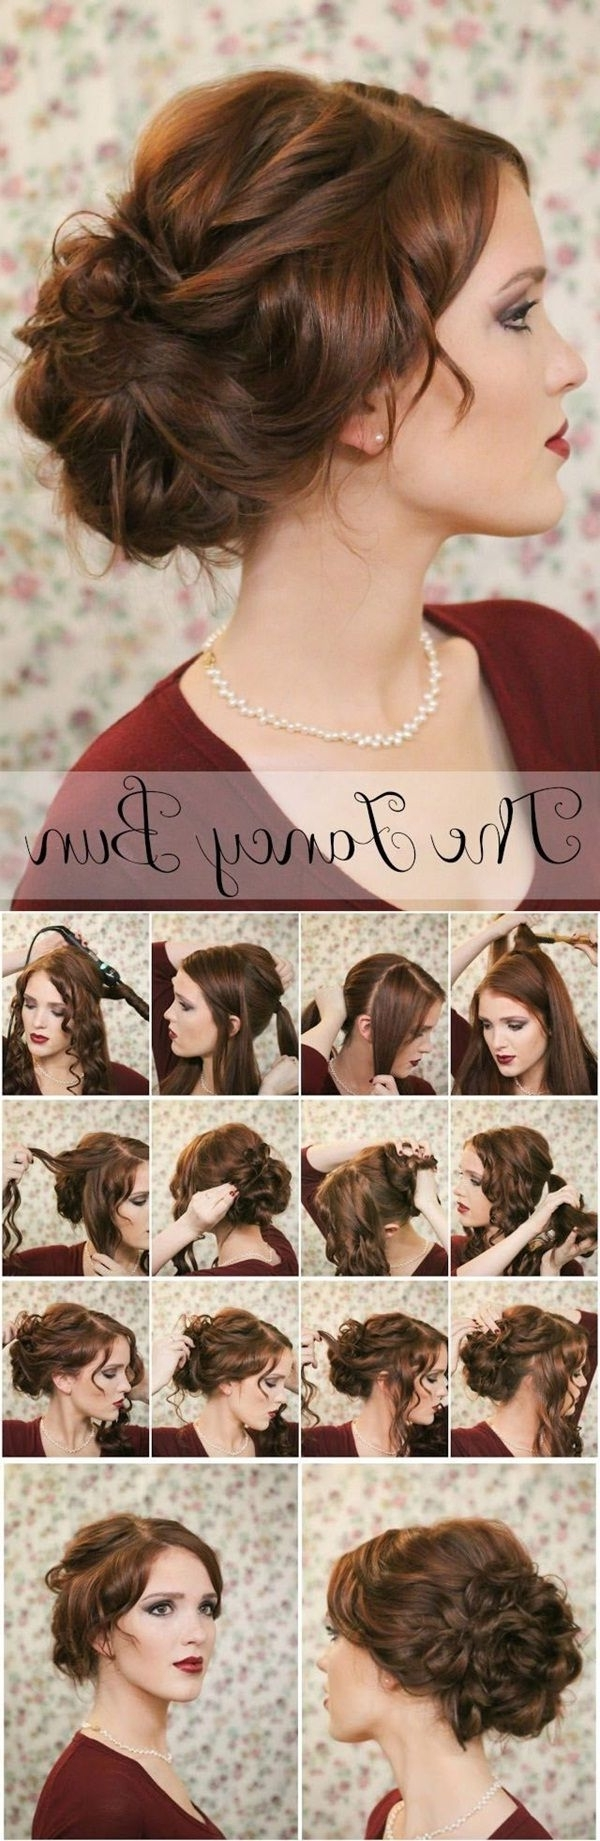 20 Diy Wedding Hairstyles With Tutorials To Try On Your Own 10+ Adorable Put Up Hairstyles For Medium Length Hair